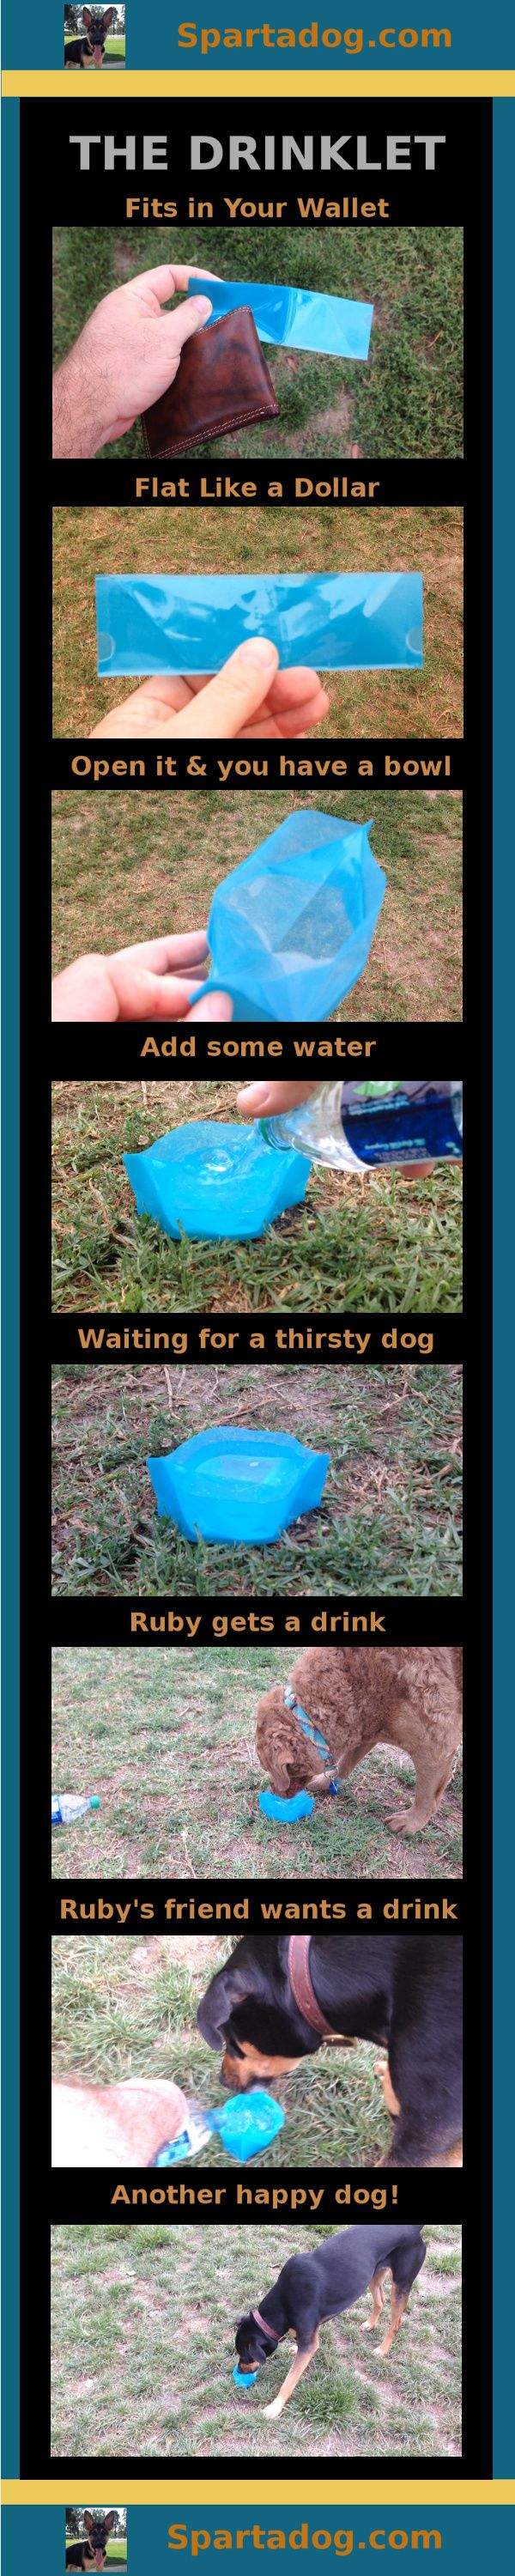 The Drinklet, a totally flat dog bowl - get yours at Spartadog.com #spartadog